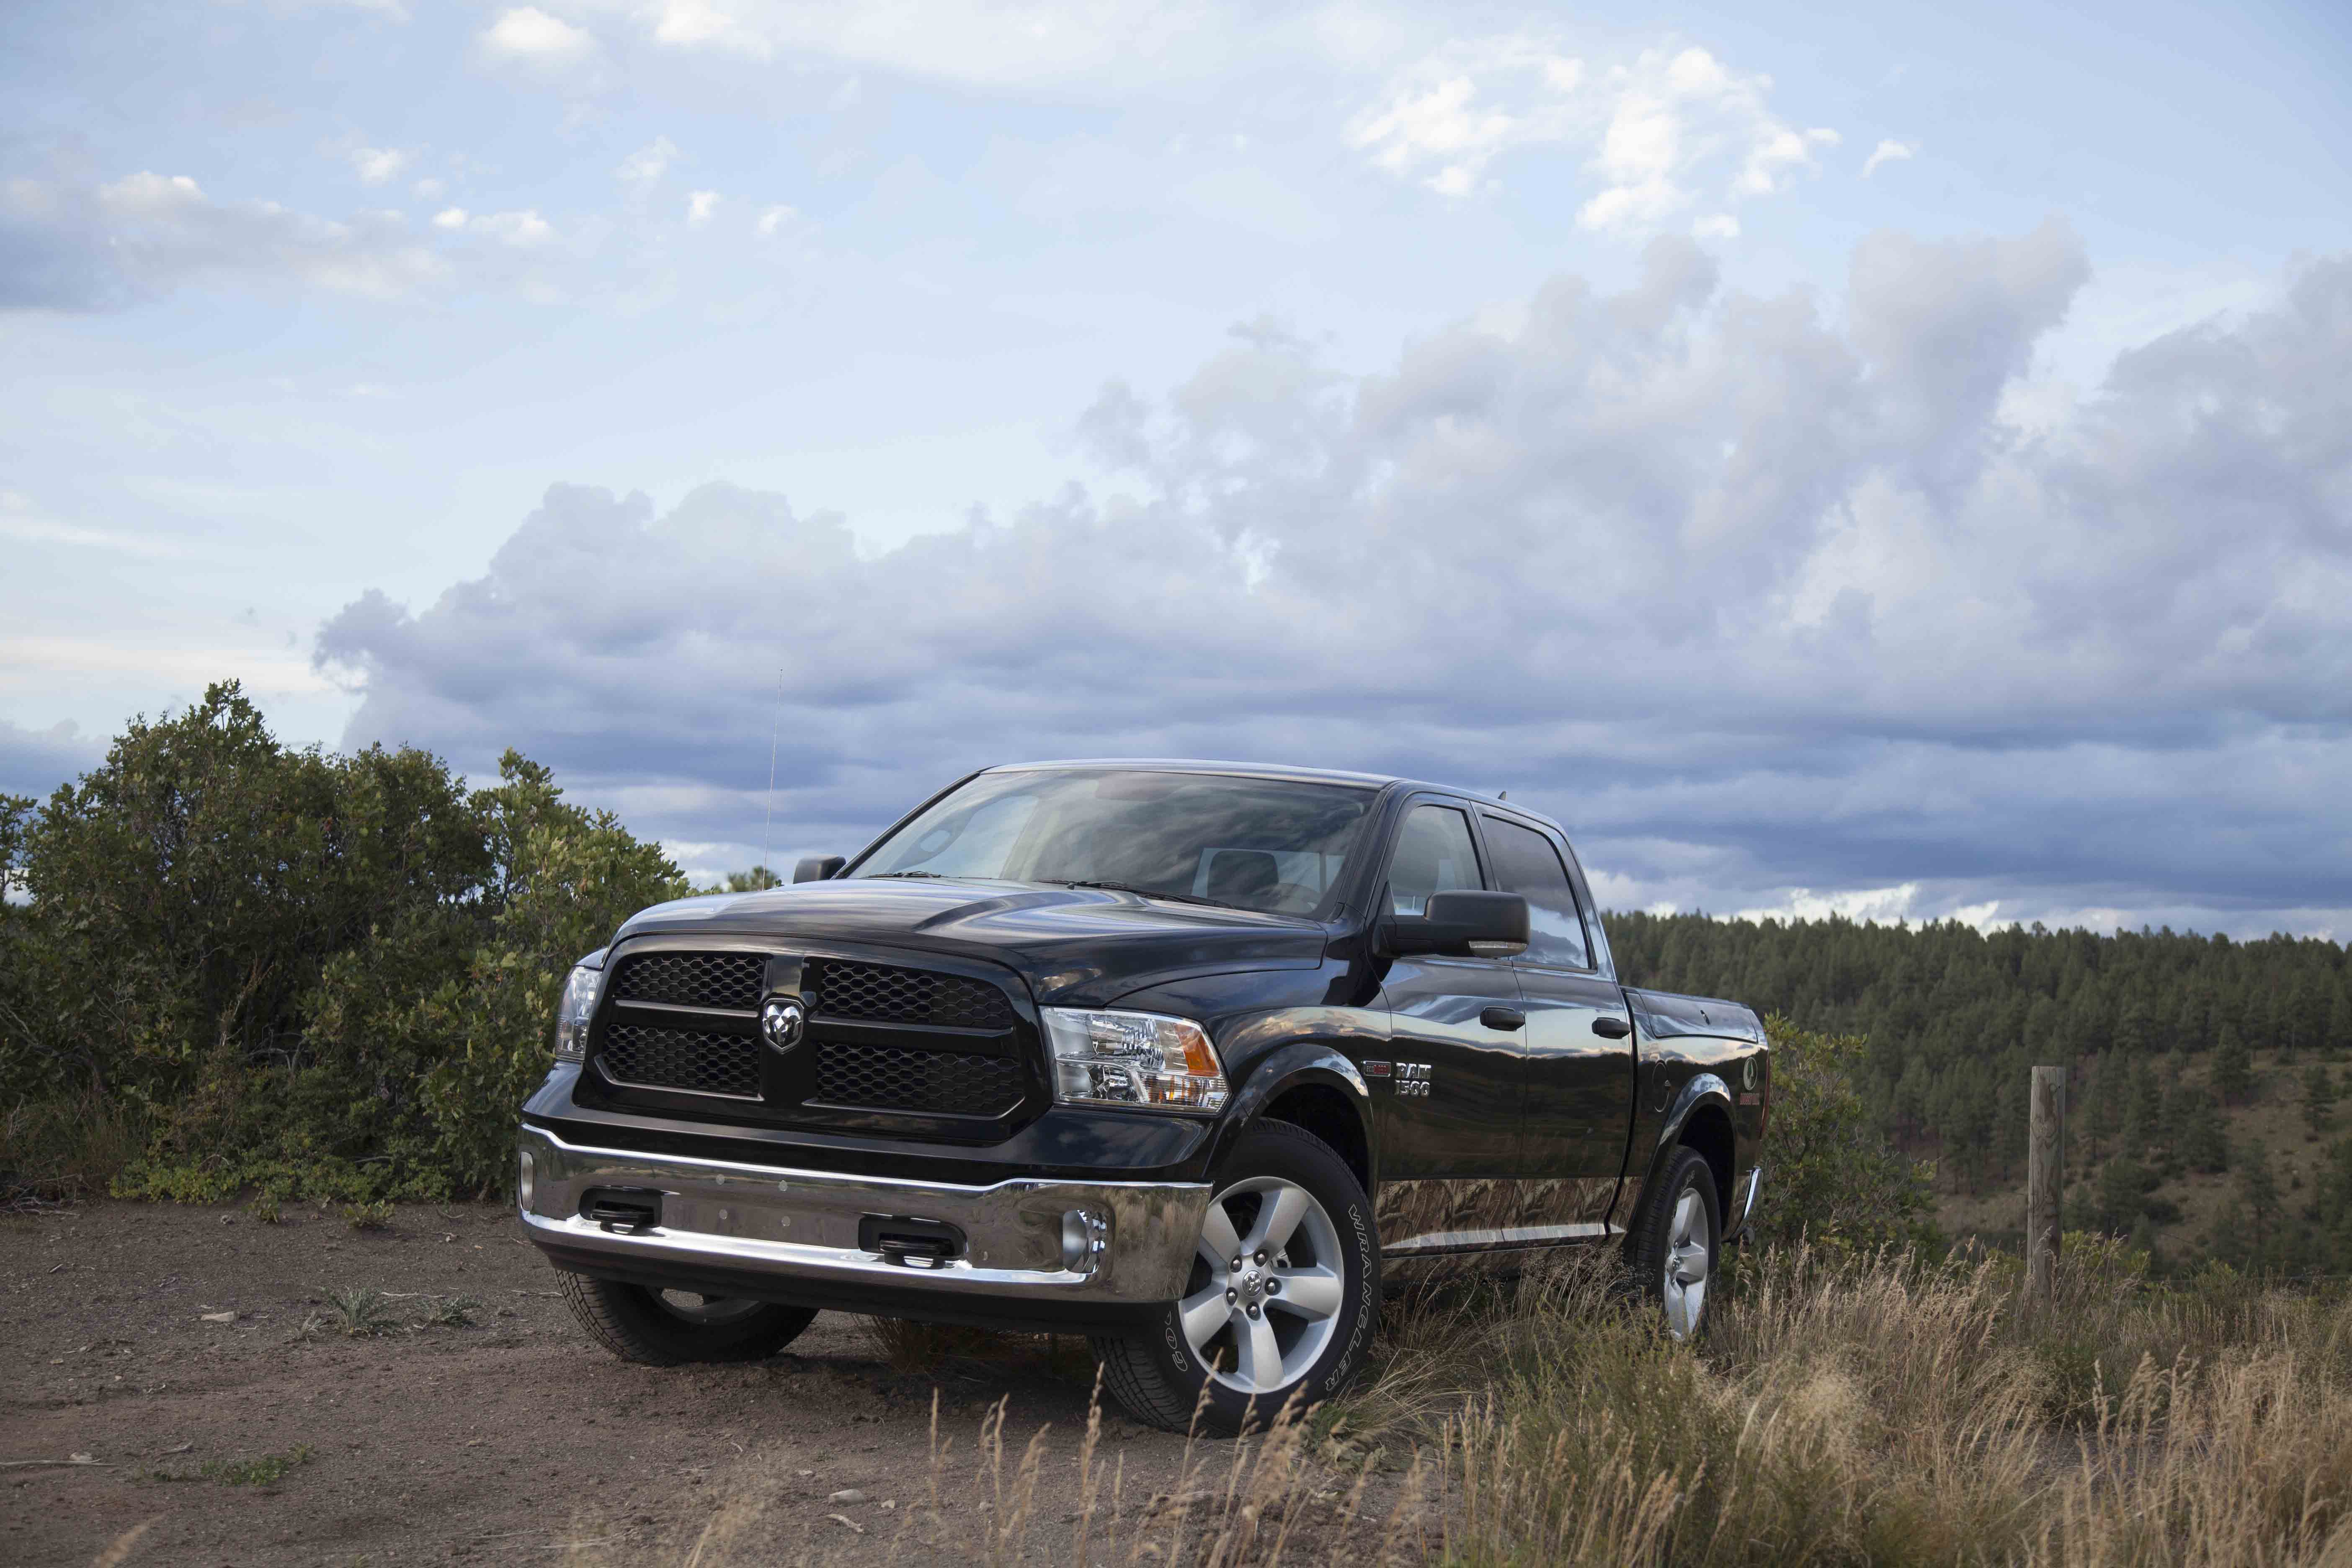 New Ram available in Sierra Vista, AZ at Lawley Chrysler Dodge Jeep Ram